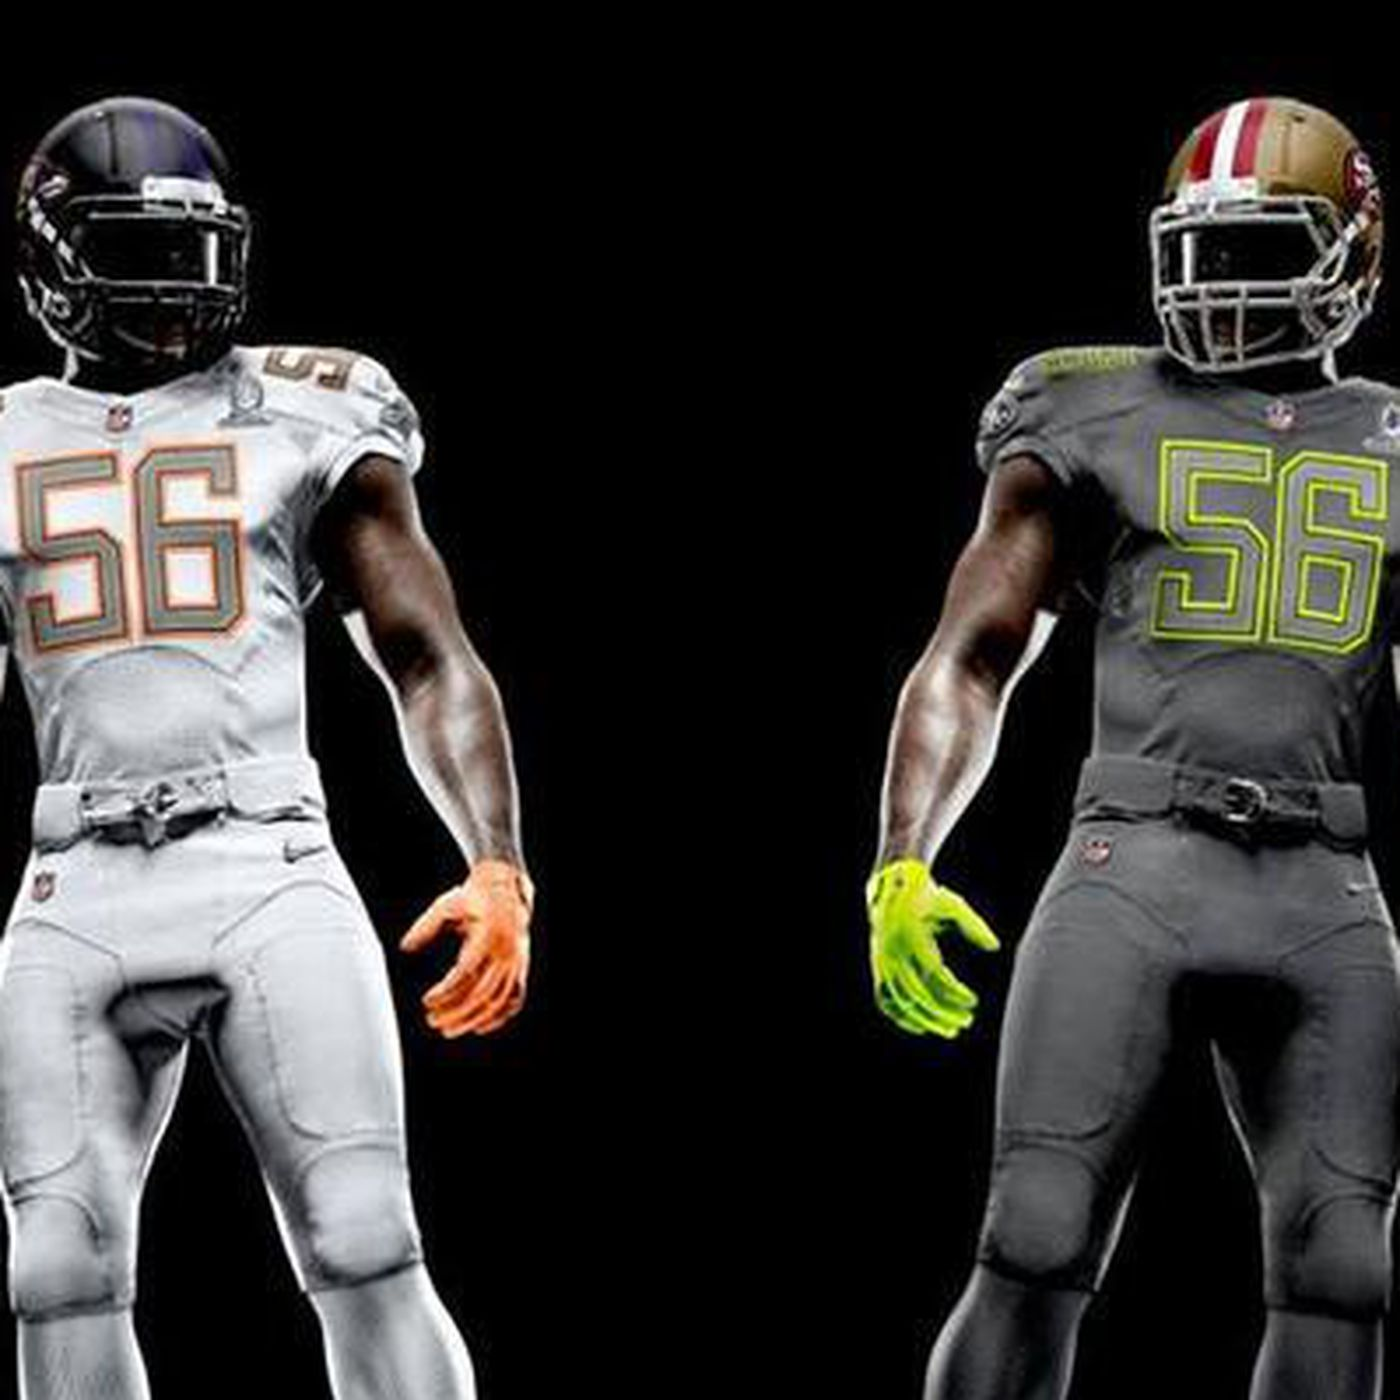 60b41f8dcb1 NFL unveils new Pro Bowl uniforms - SBNation.com